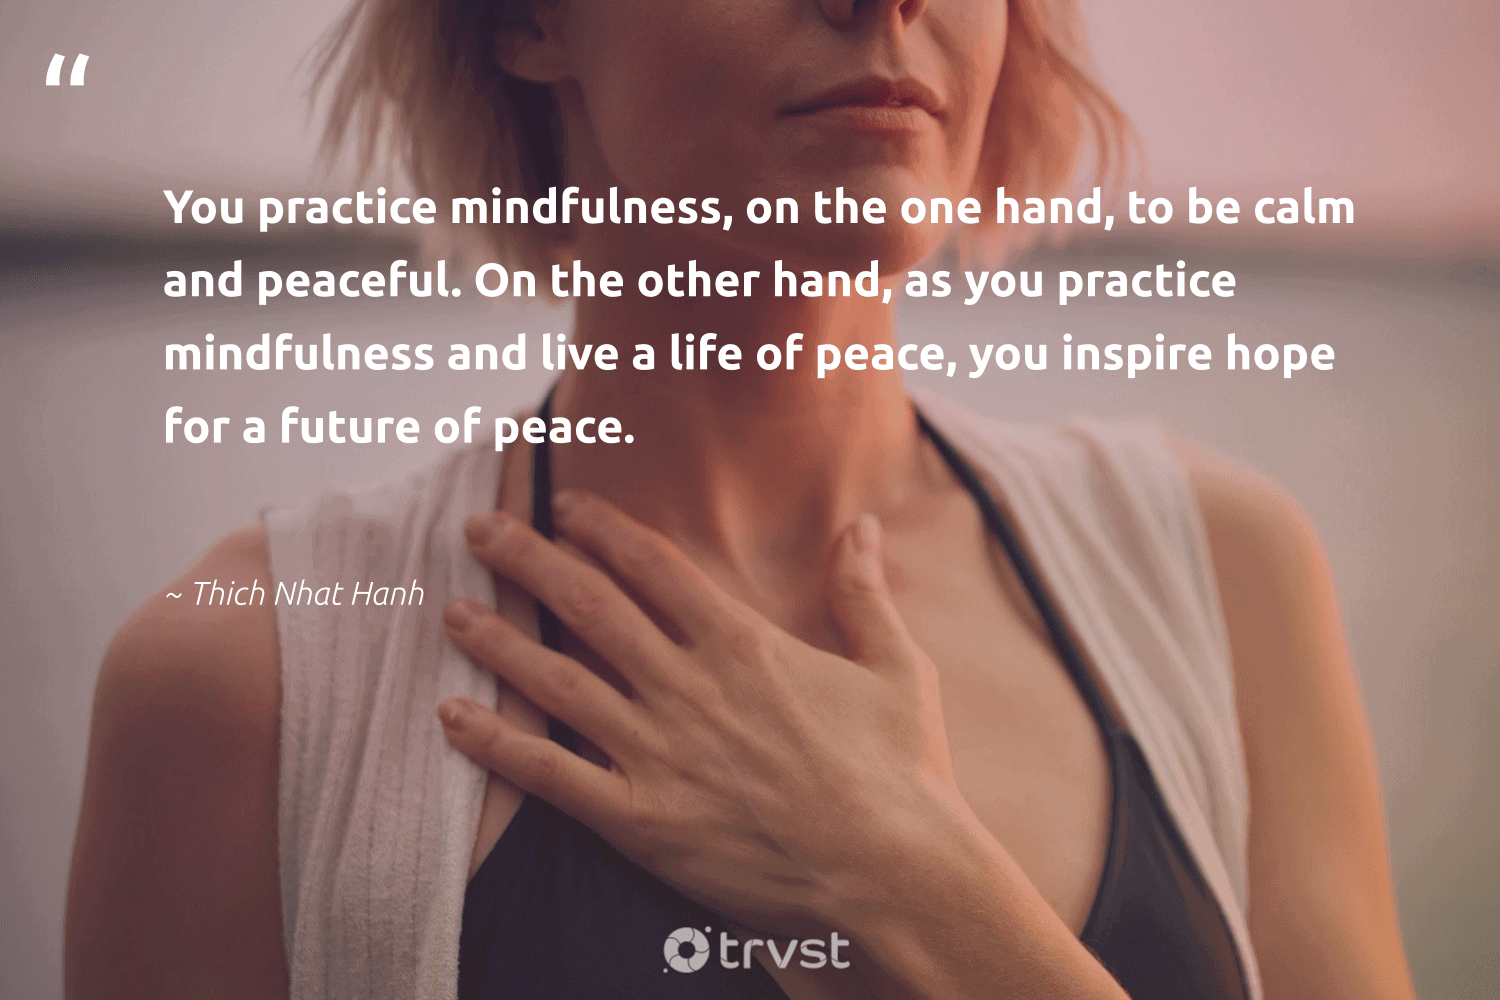 """""""You practice mindfulness, on the one hand, to be calm and peaceful. On the other hand, as you practice mindfulness and live a life of peace, you inspire hope for a future of peace.""""  - Thich Nhat Hanh #trvst #quotes #peace #hope #mindfulness #meditation #mindful #togetherwecan #collectiveaction #mindset #positivity #begreat"""